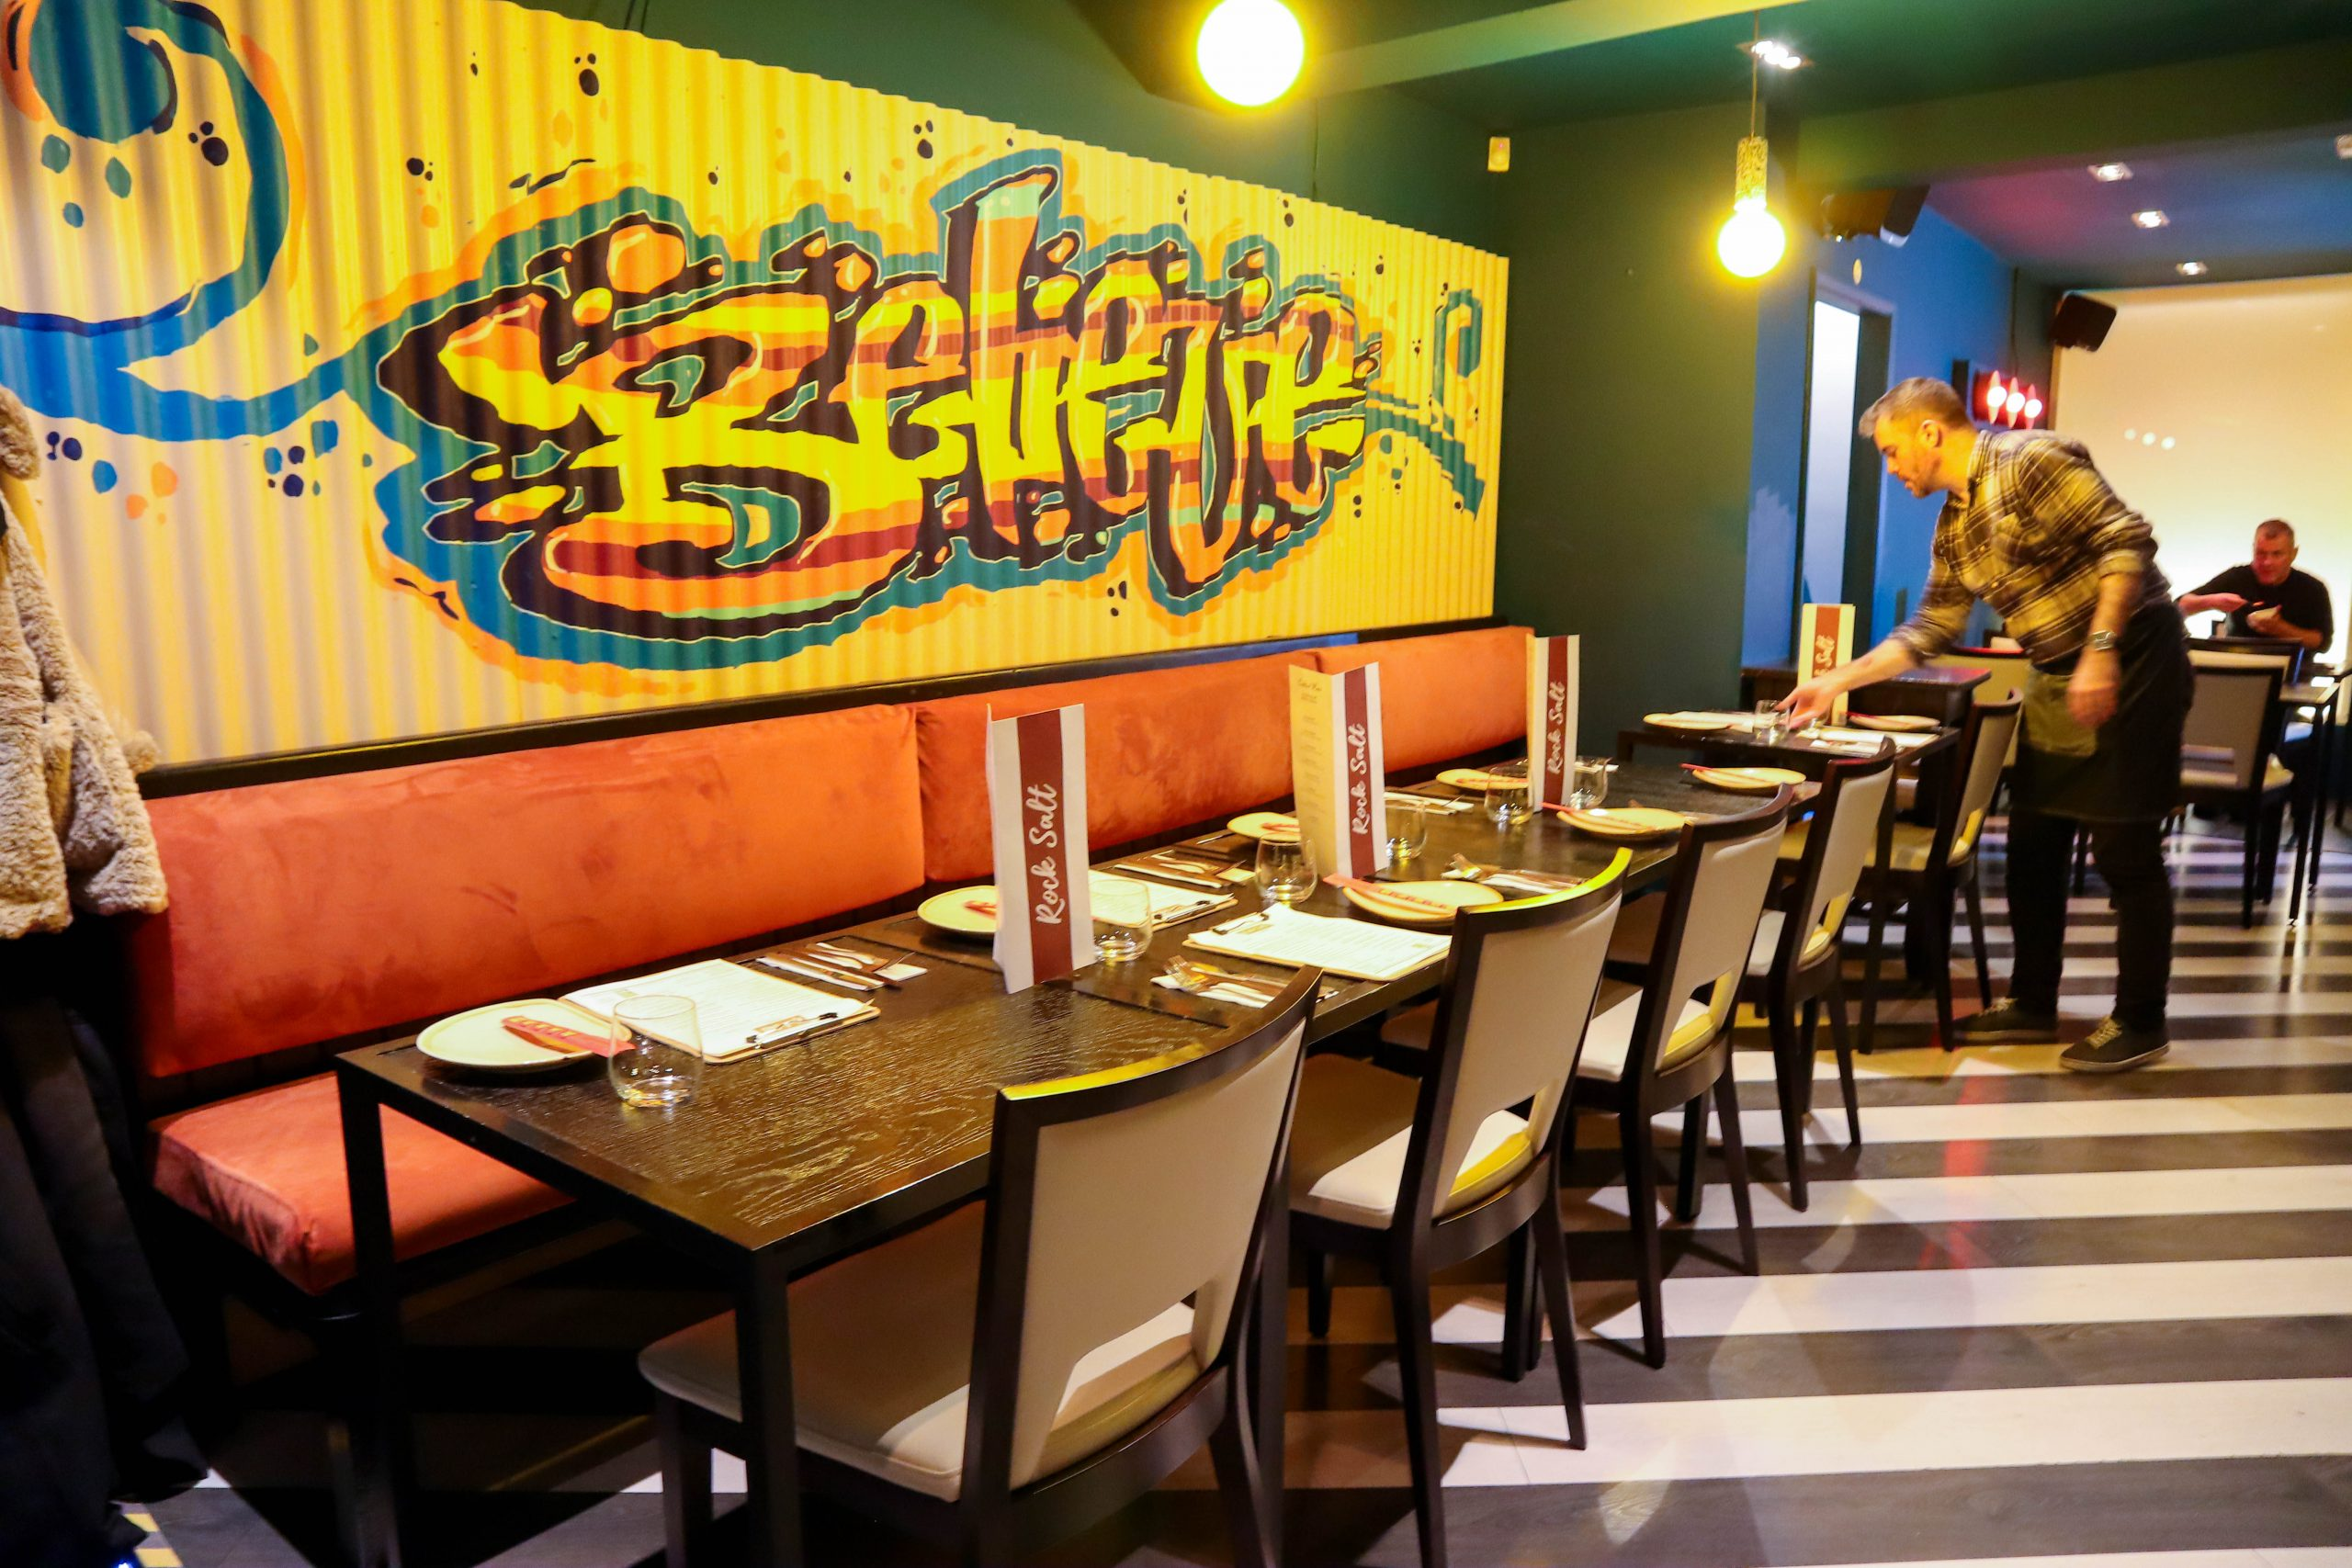 Can Rock Salt pull off an Indian & Chinese cuisine concept?